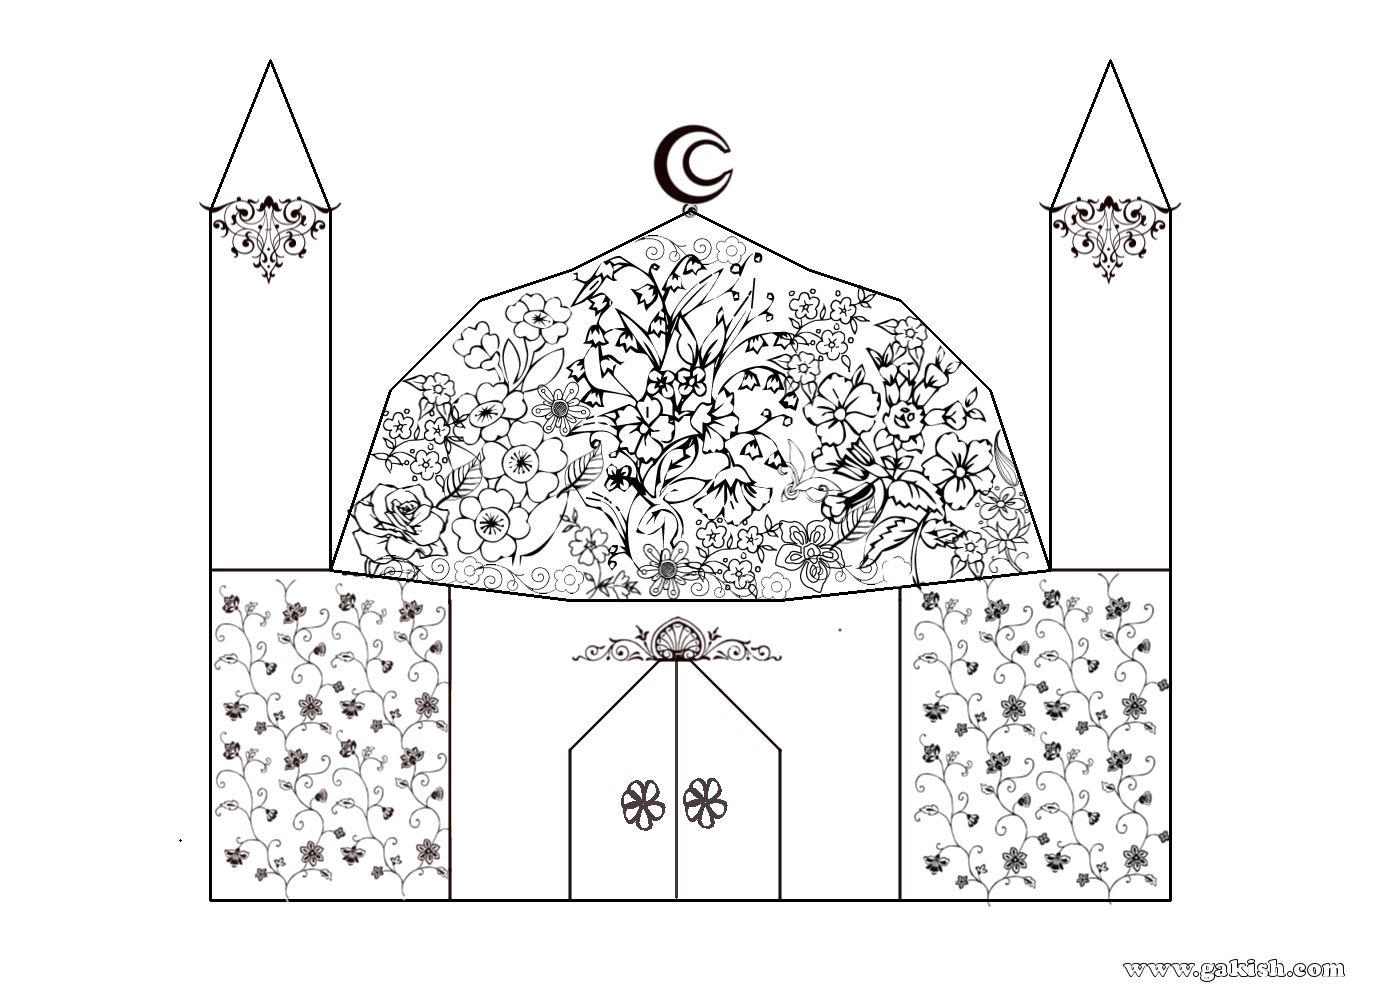 Adult Top Muslim Coloring Pages Gallery Images best kids coloring pages and islamic on pinterest images